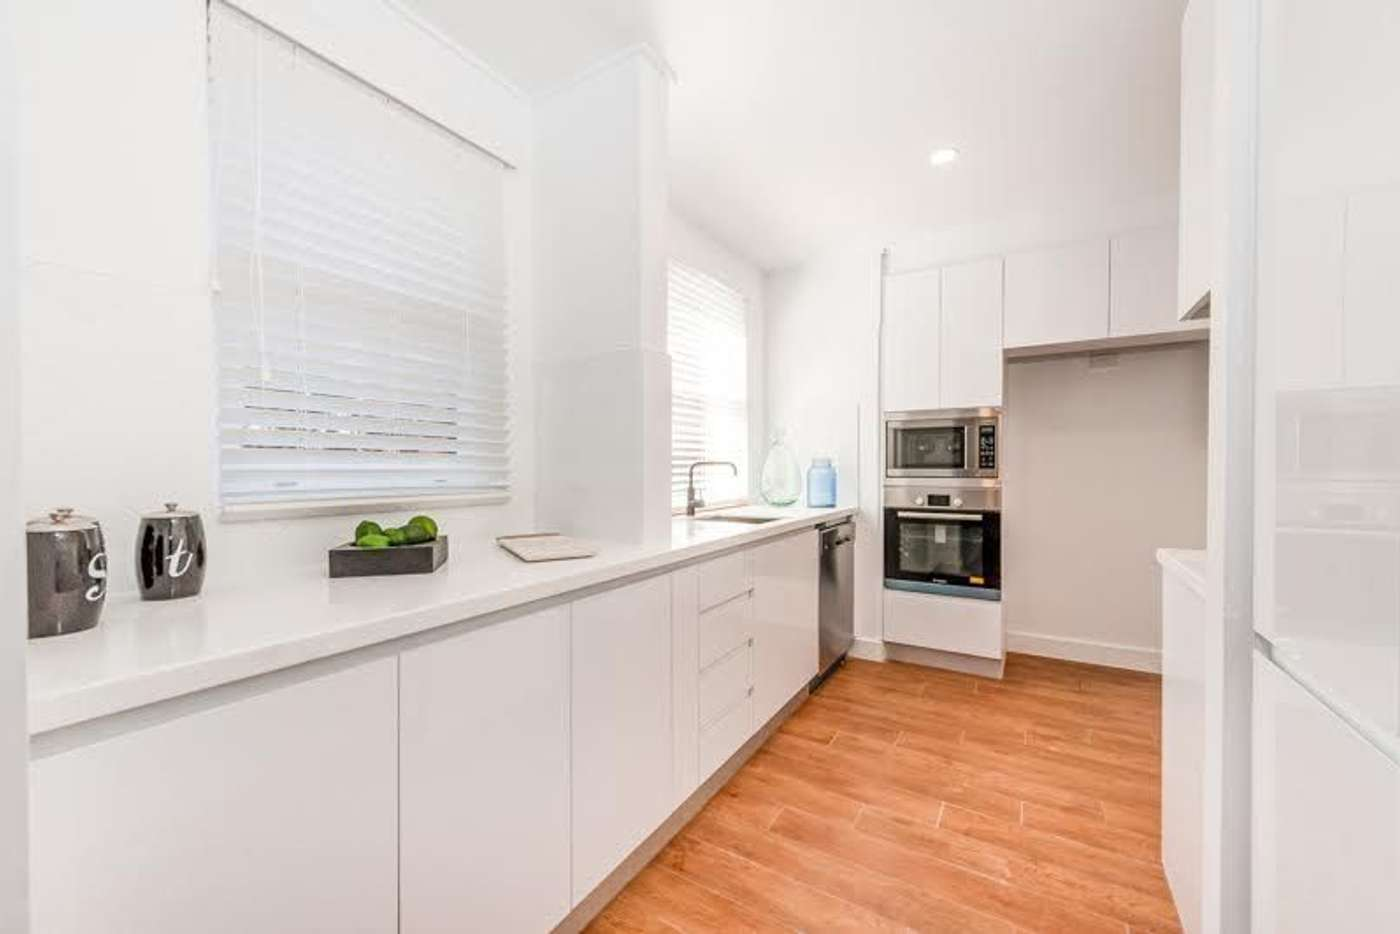 Main view of Homely apartment listing, 8/13 Botany Street, Bondi Junction NSW 2022